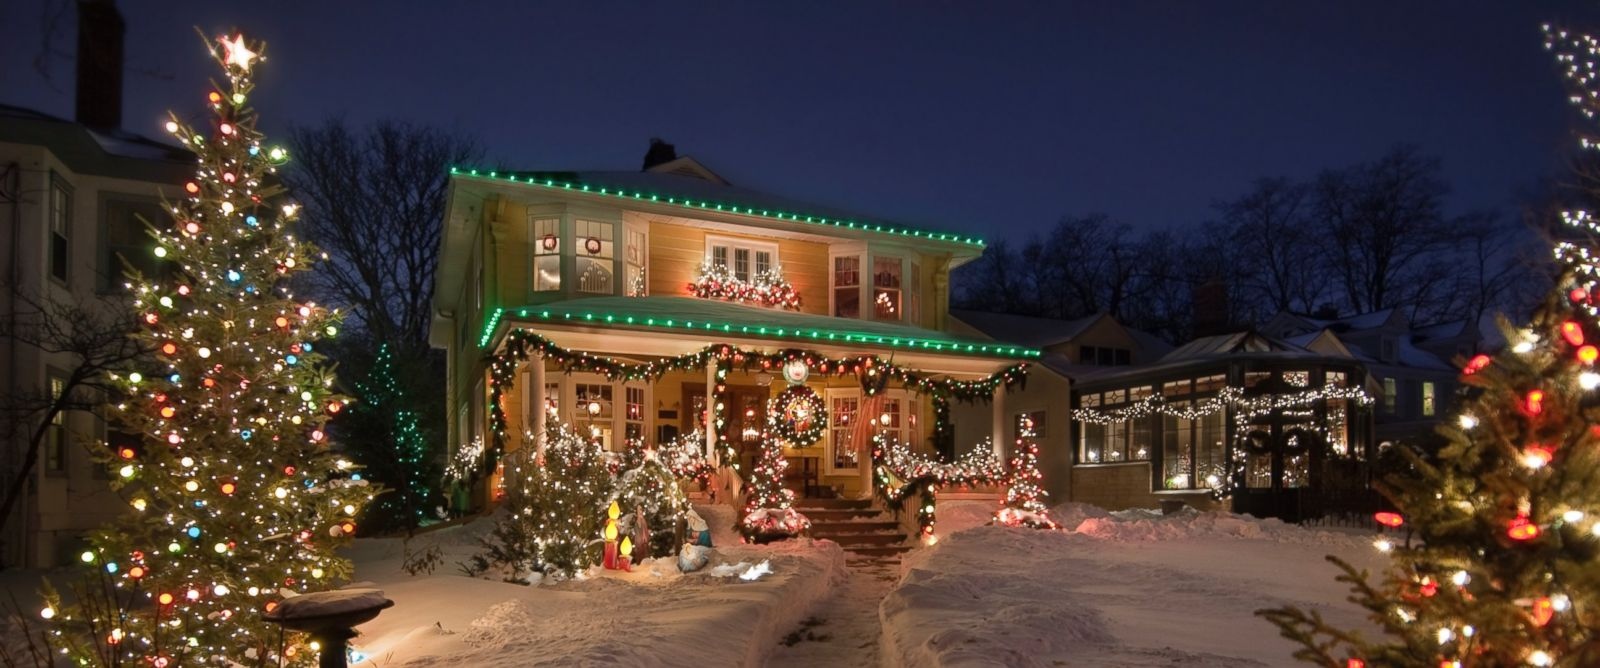 PHOTO: A Christmas display lights up a home in an undated file photo.